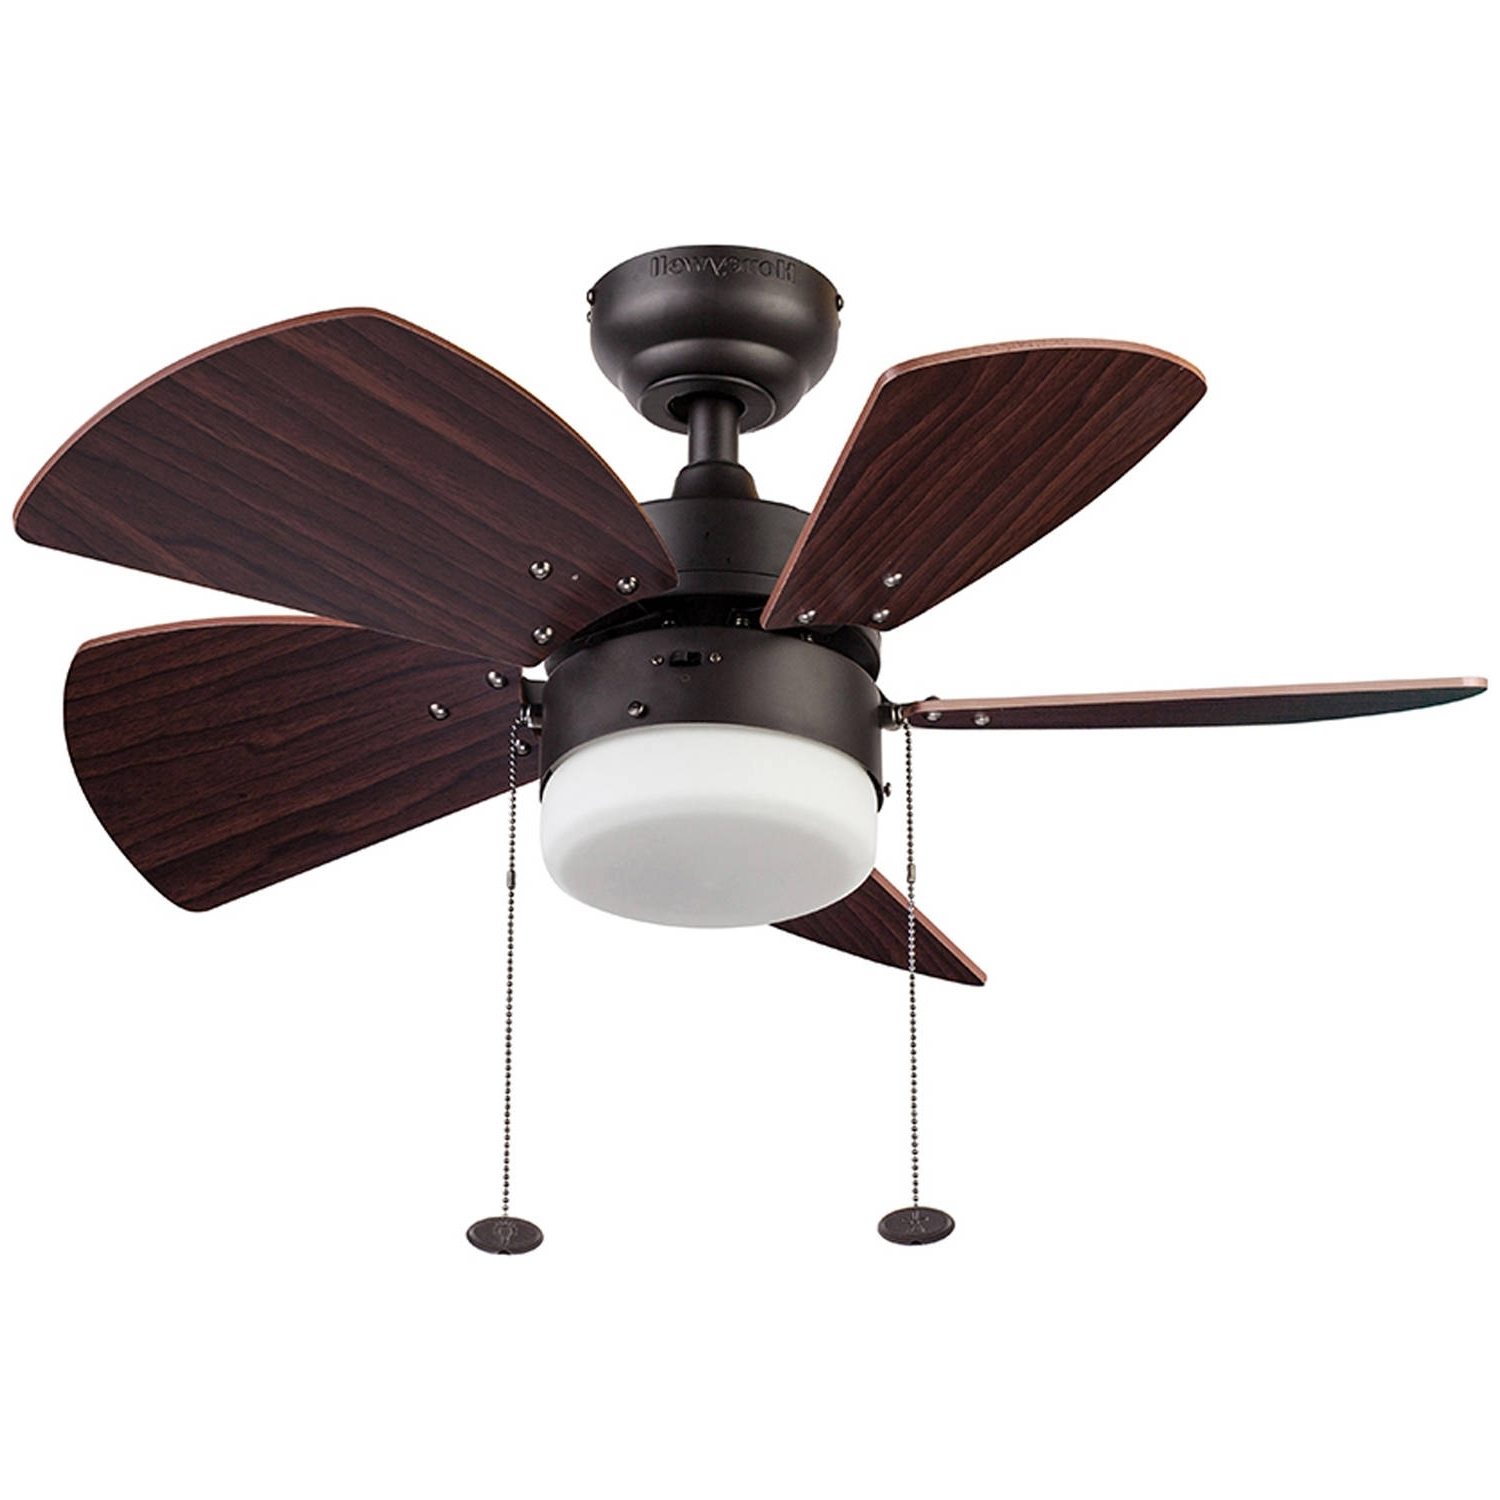 Outdoor Ceiling Fans At Walmart Throughout Best And Newest 30Quot; Honeywell Lenox Ceiling Fan, Bronze Walmartcom, Ceiling Fans (View 14 of 20)